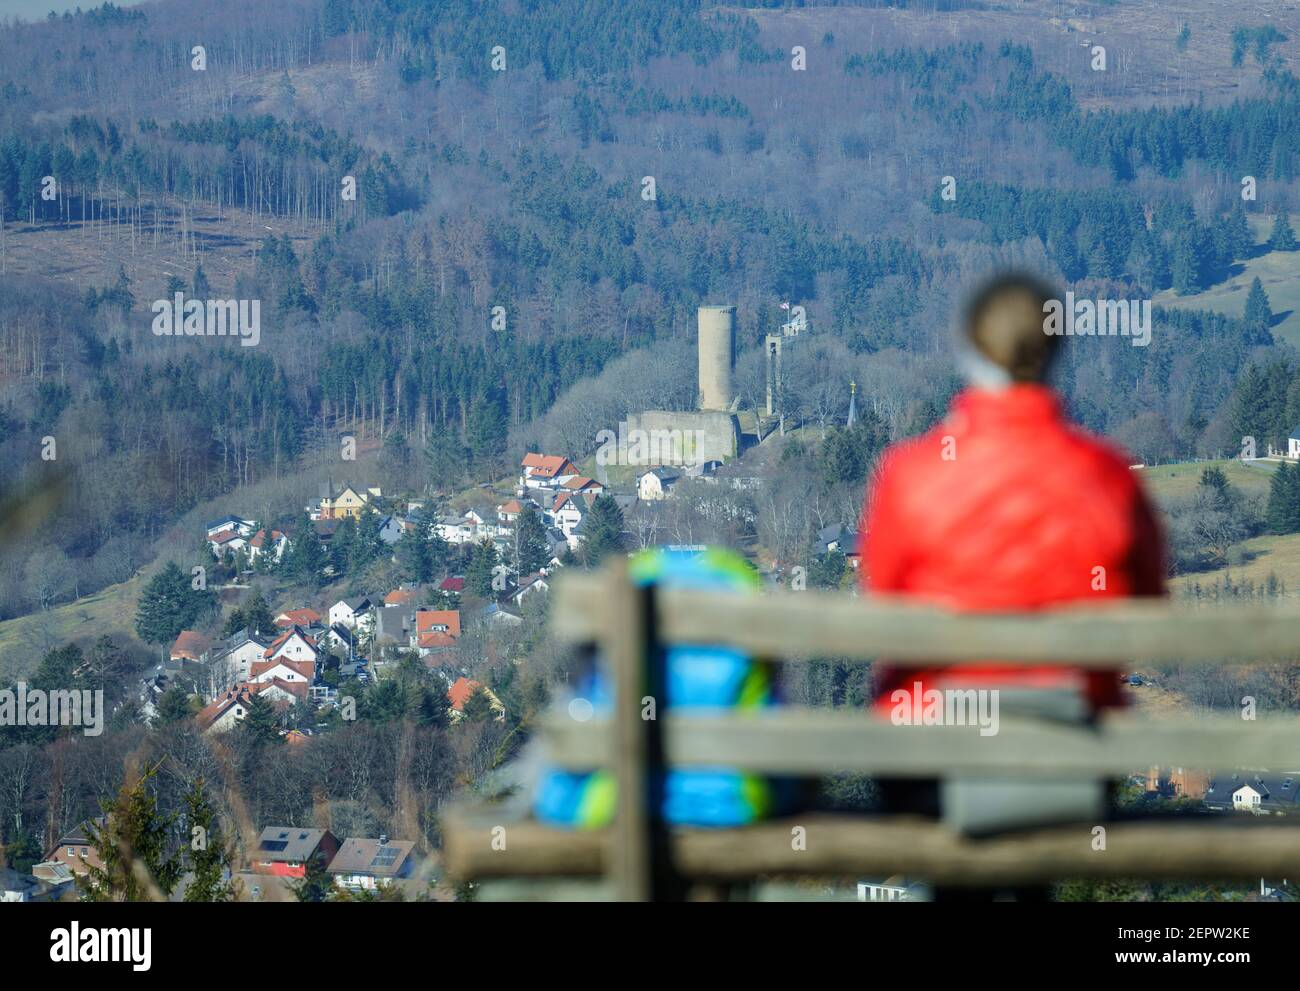 Schmitten, Germany. 28th Feb, 2021. A woman sits on a bench on the Feldberg plateau with a view of Reifenberg Castle. With temperatures around 2 degrees Celsius, many people make a trip to the local mountain in the Rhine-Main region. Credit: Andreas Arnold/dpa/Alamy Live News Stock Photo